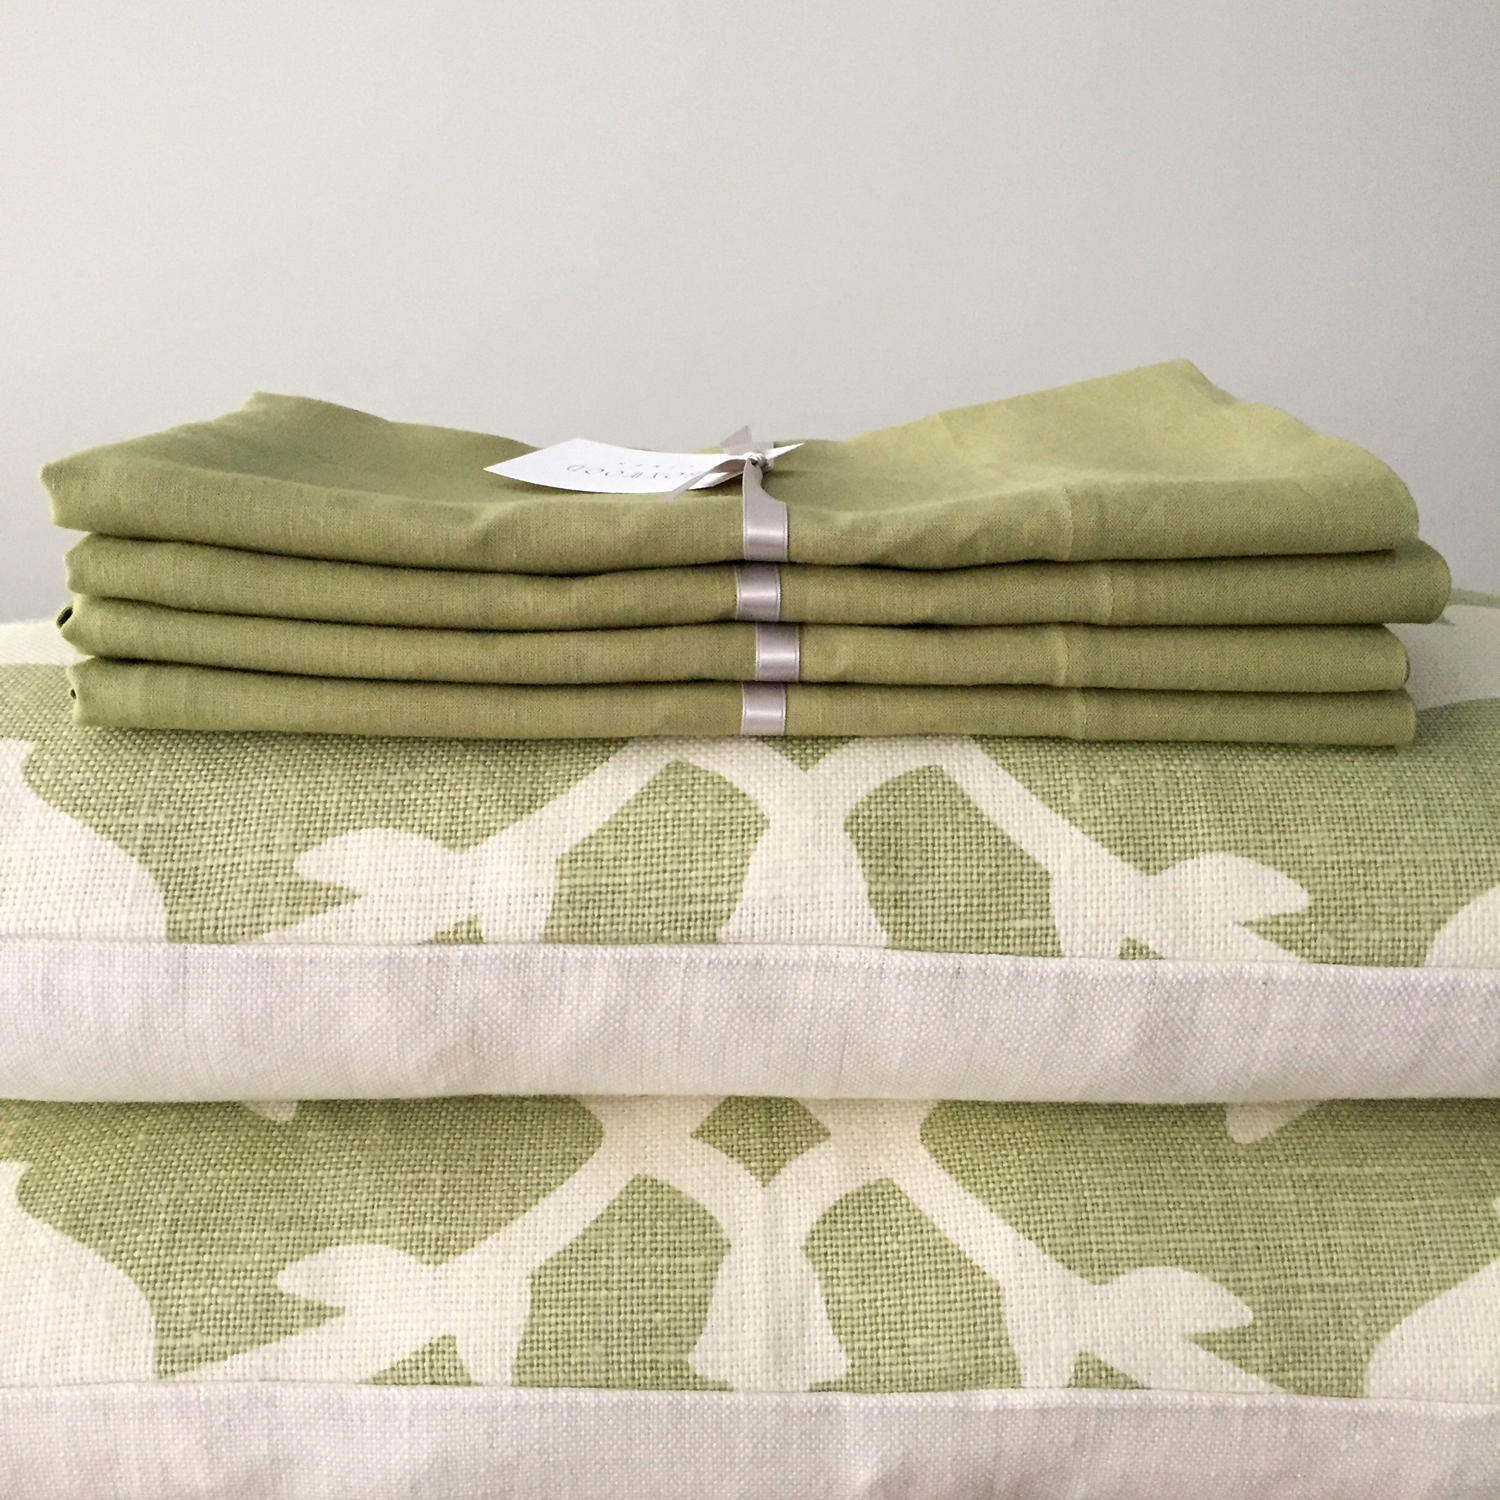 Pistachio Green Linen Pillowcases